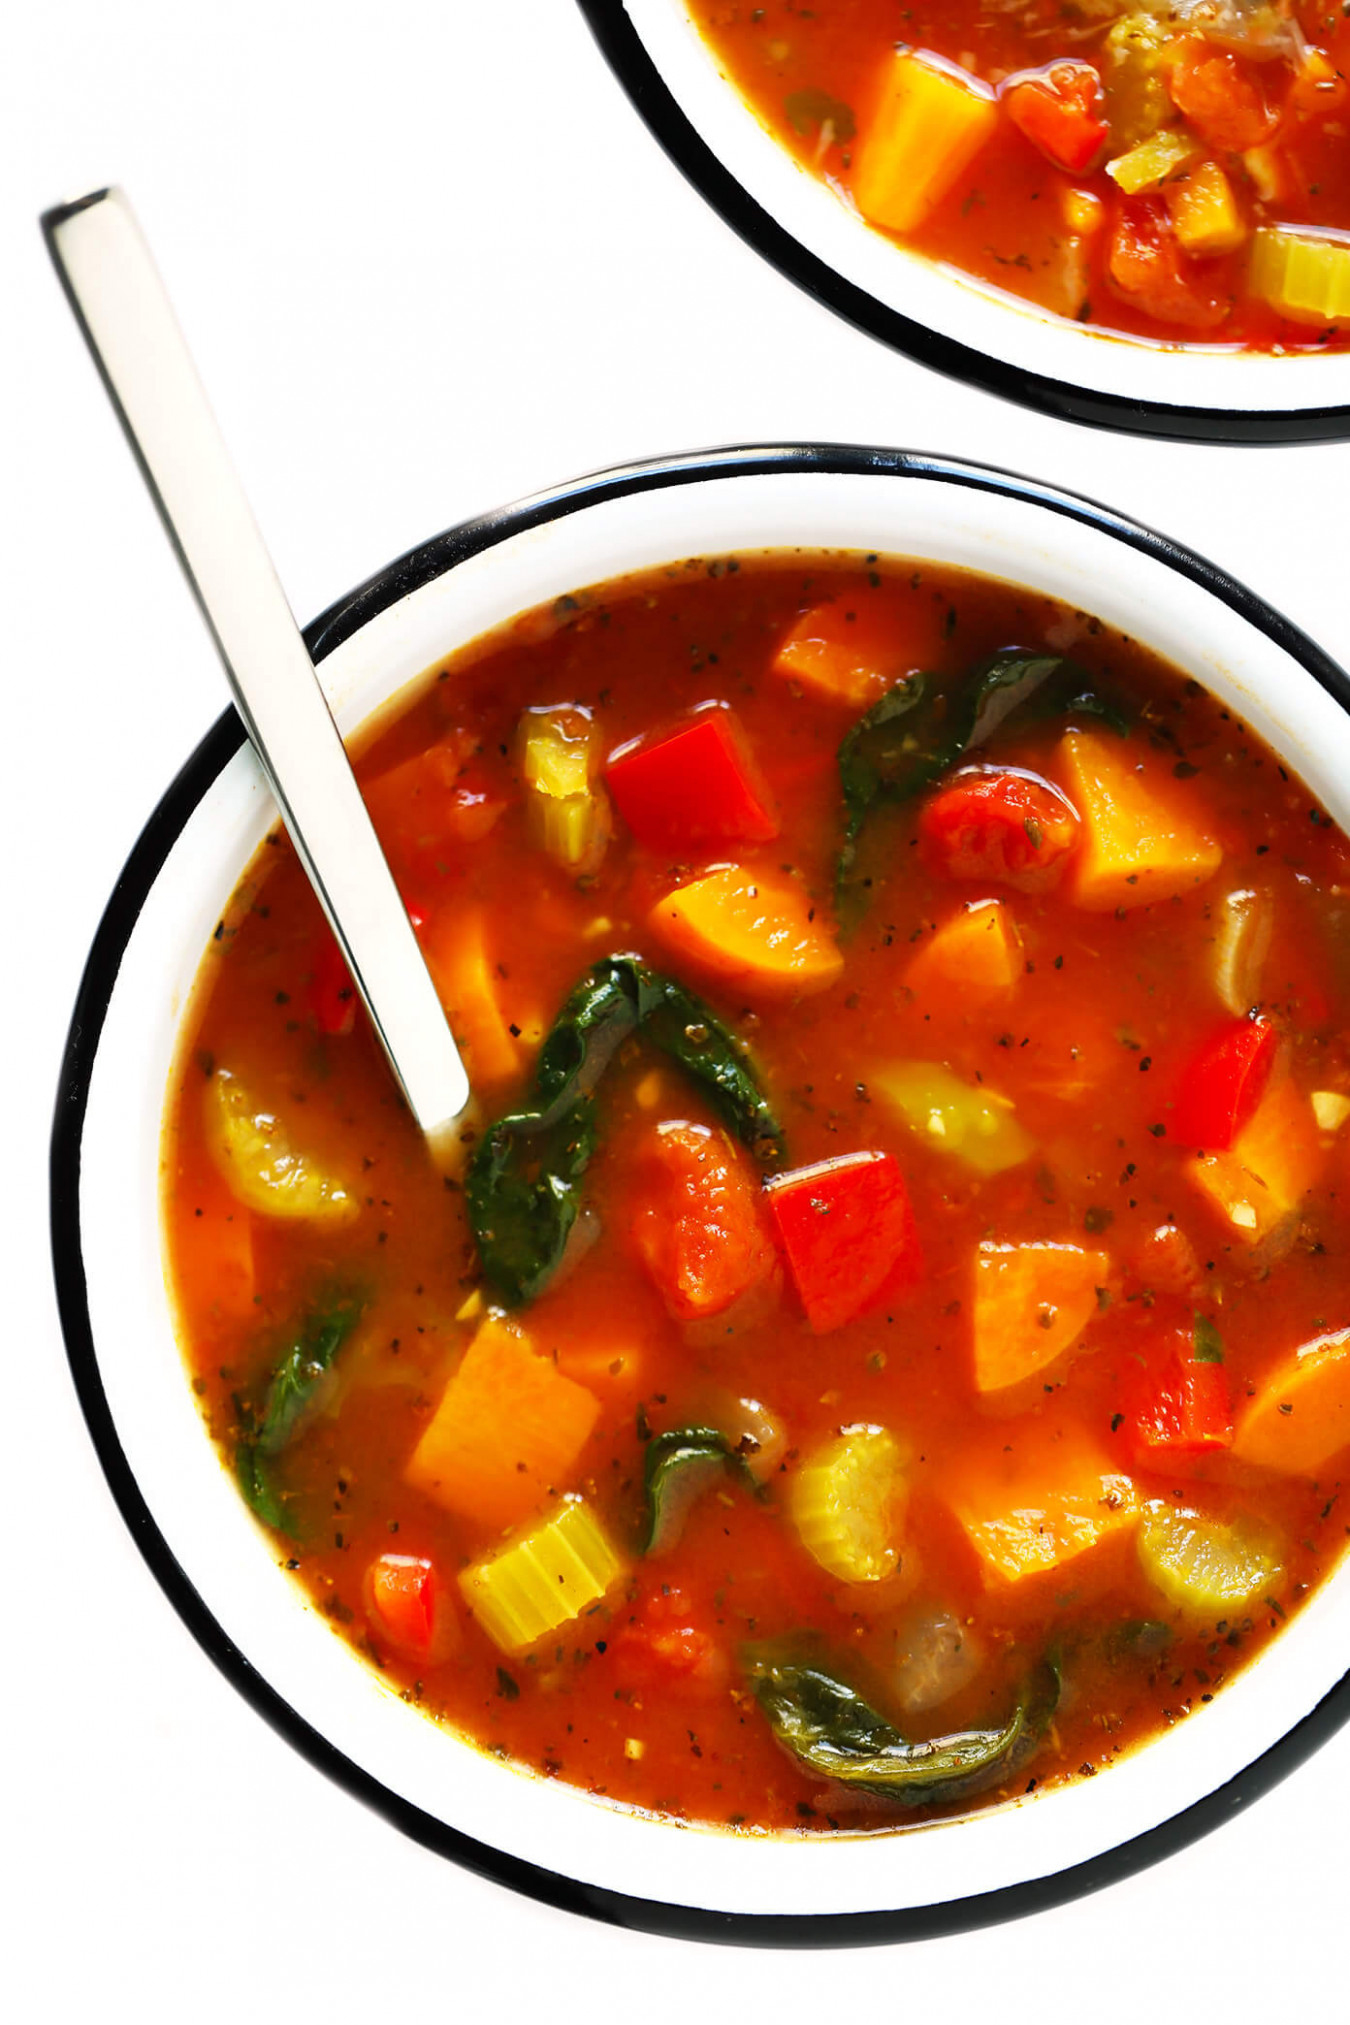 My Favorite Vegetable Soup Recipe | Gimme Some Oven - best homemade chicken vegetable soup recipes